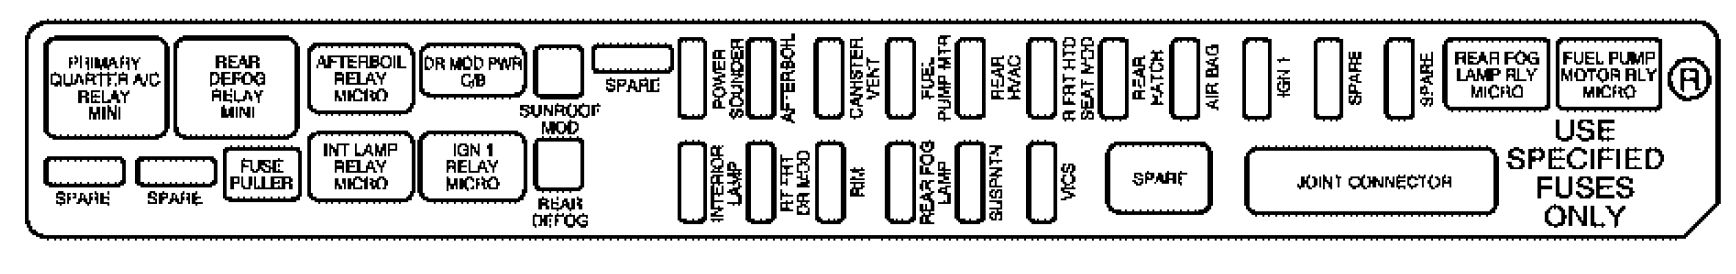 Cadillac SRX (2005 - 2006) - fuse box diagram - Auto Genius